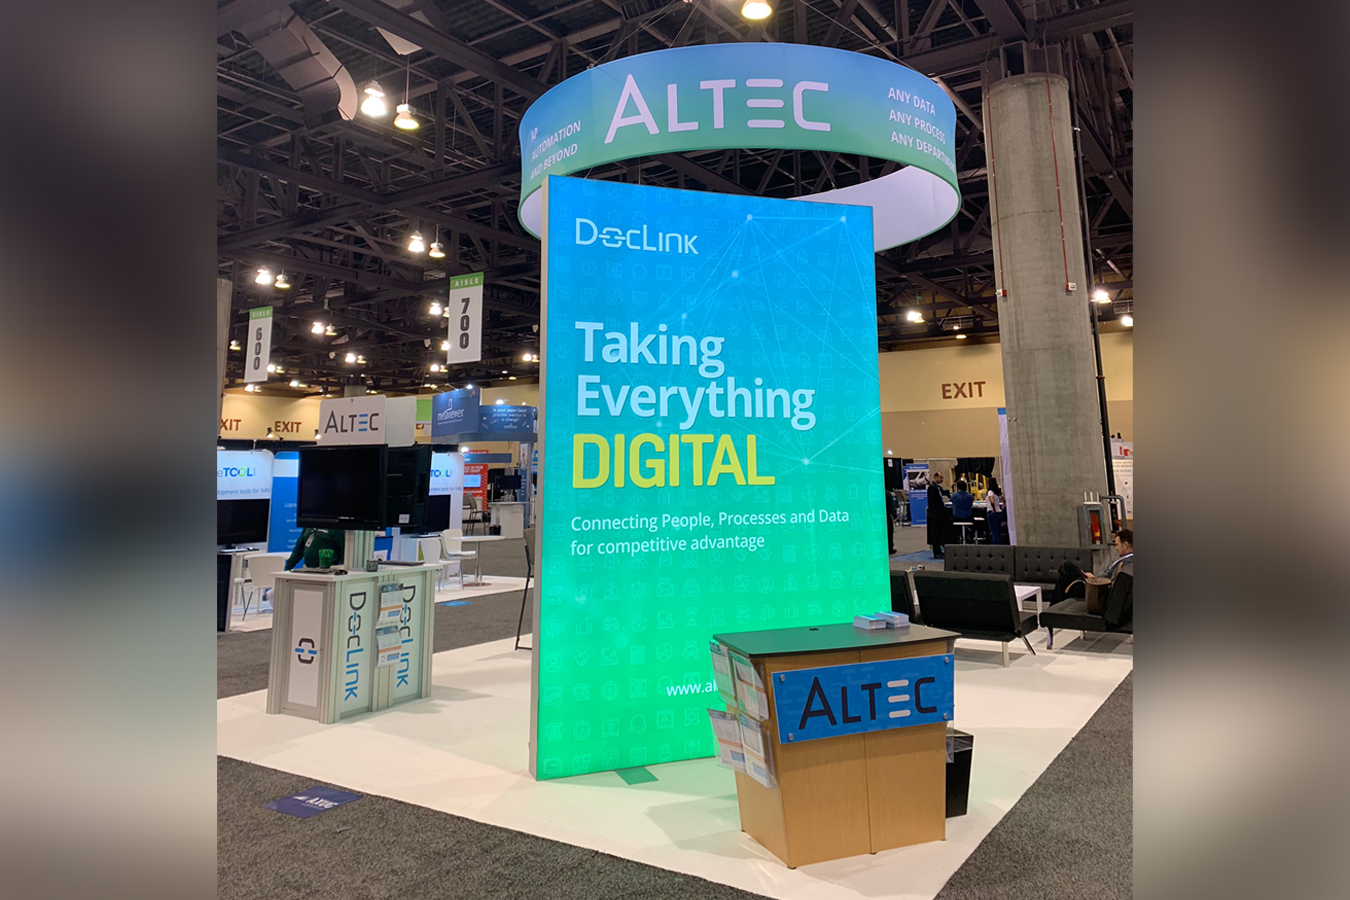 Altec Lightbox and booth